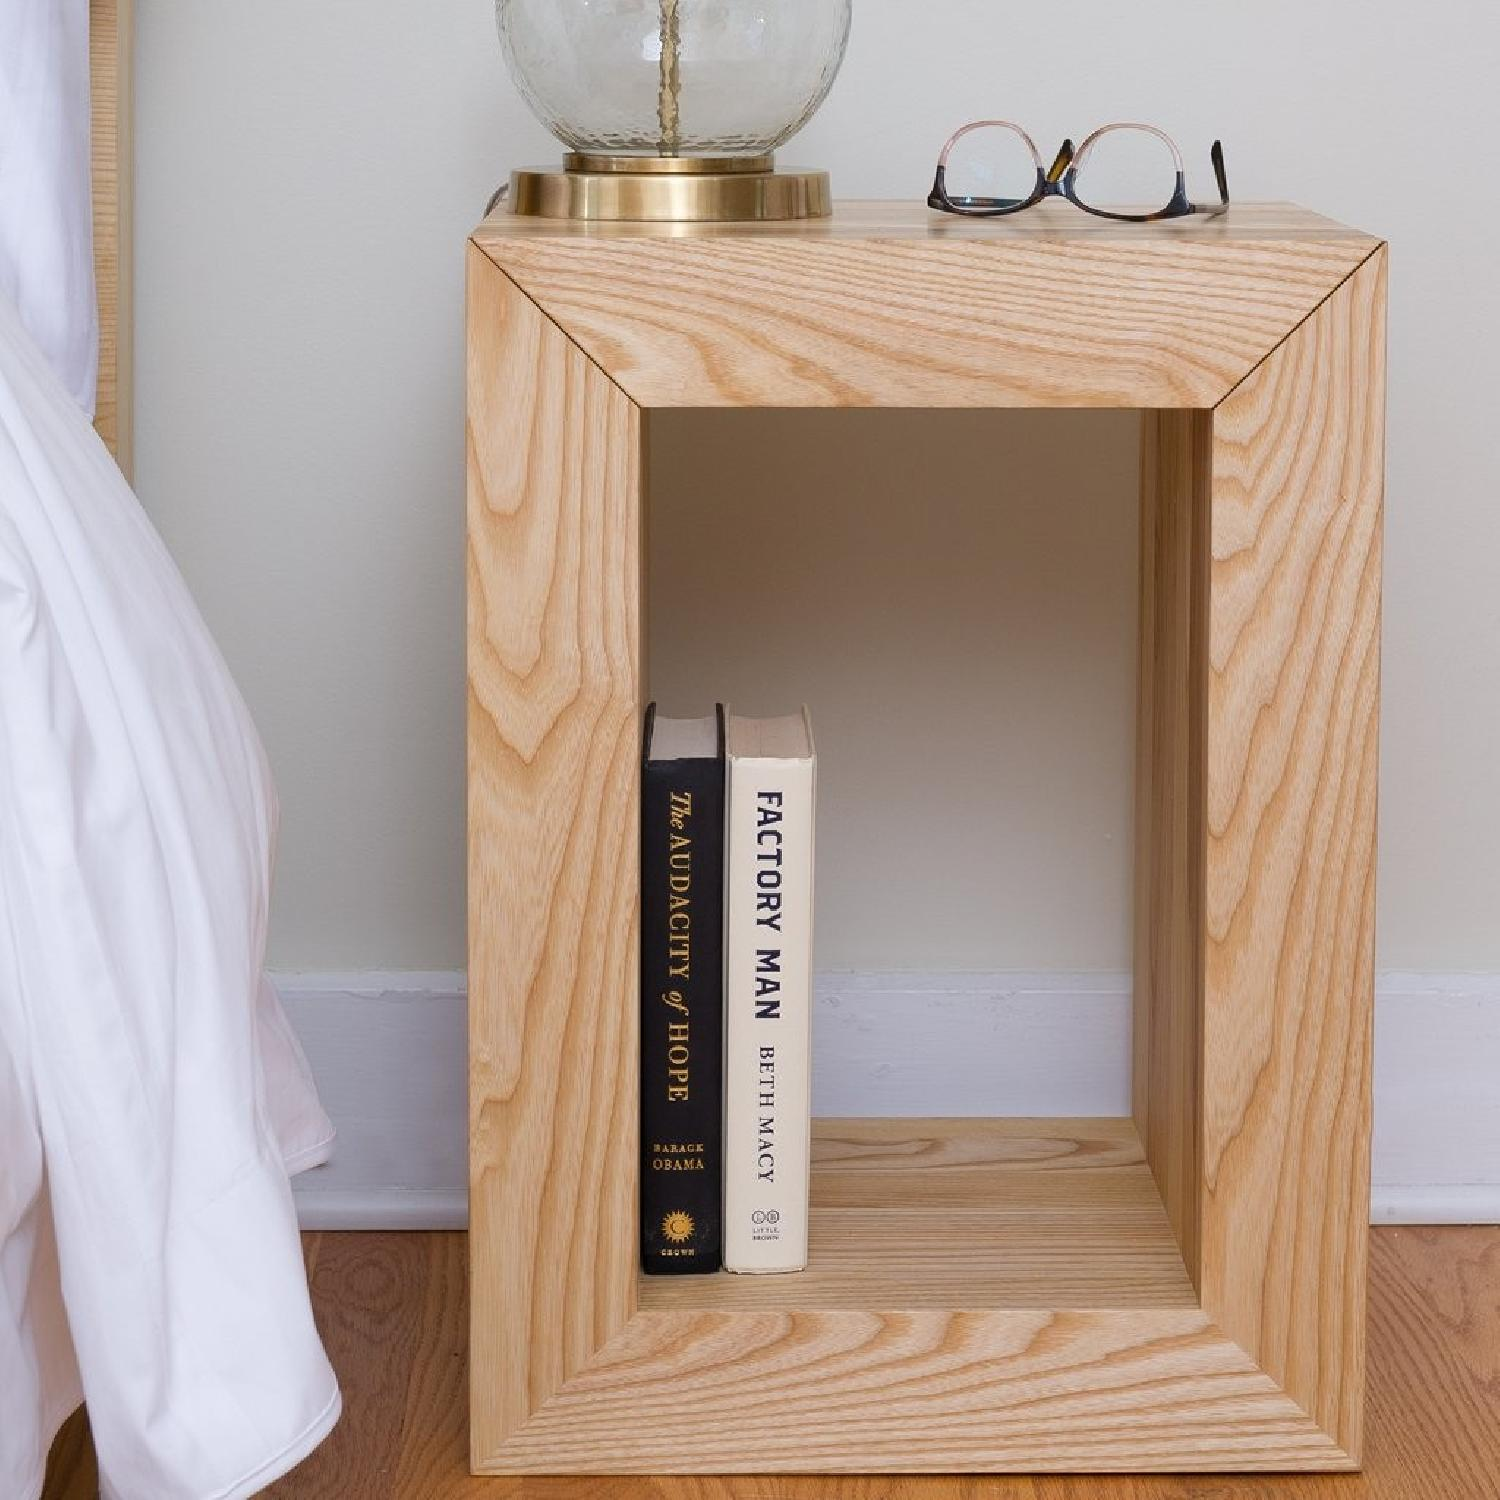 Handmade Wooden Side Table - image-1